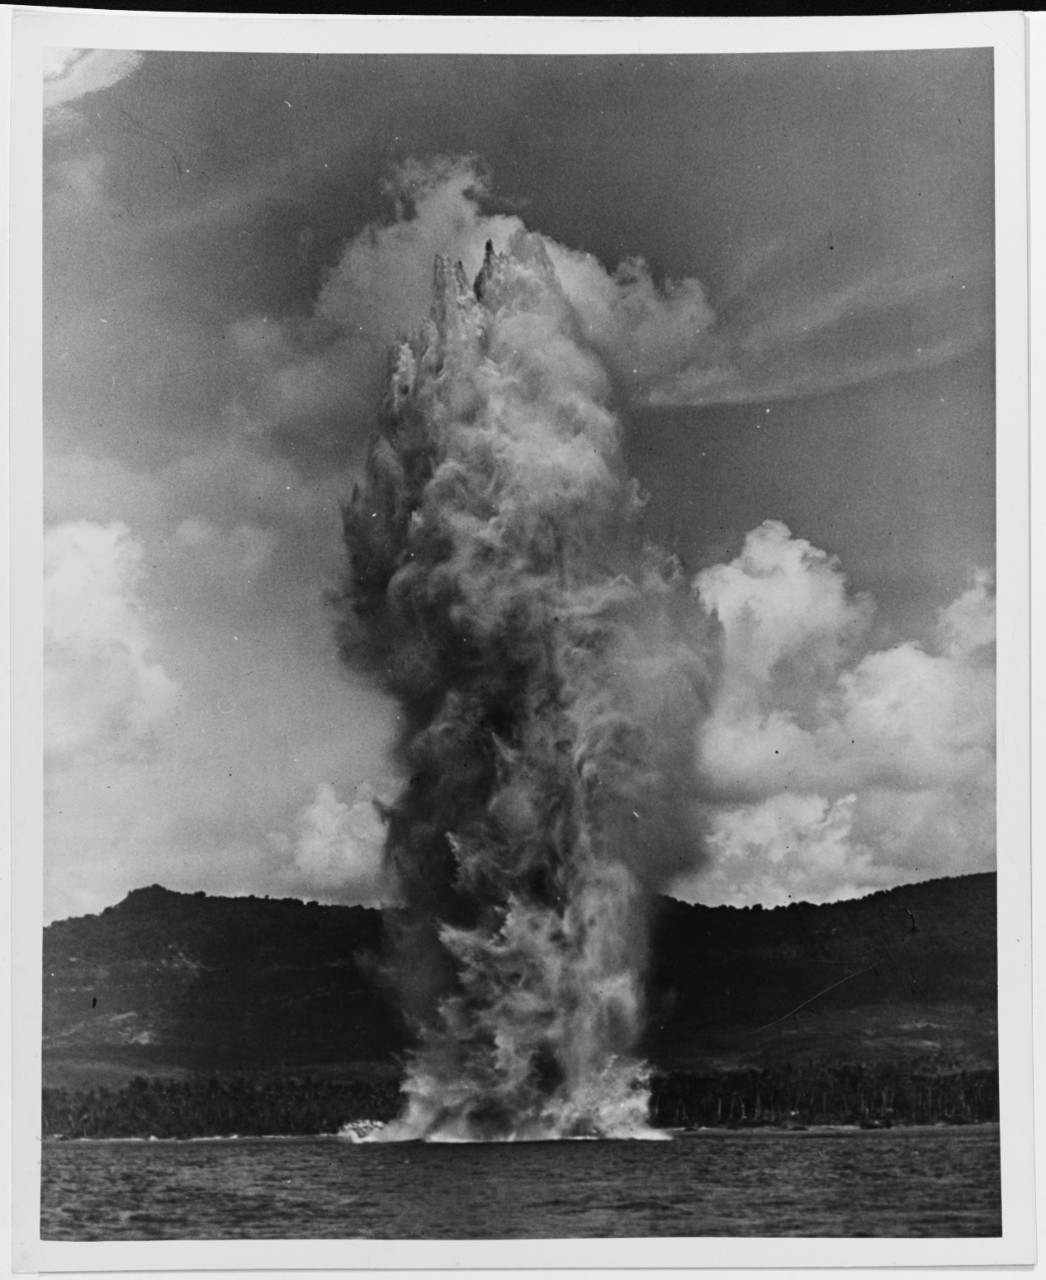 A UDT (Underwater Demolition Team) explosive charge blows up an underwater obstacle off Agat Beach, Guam, during the invasion of that island, July 1944 80-G-700639